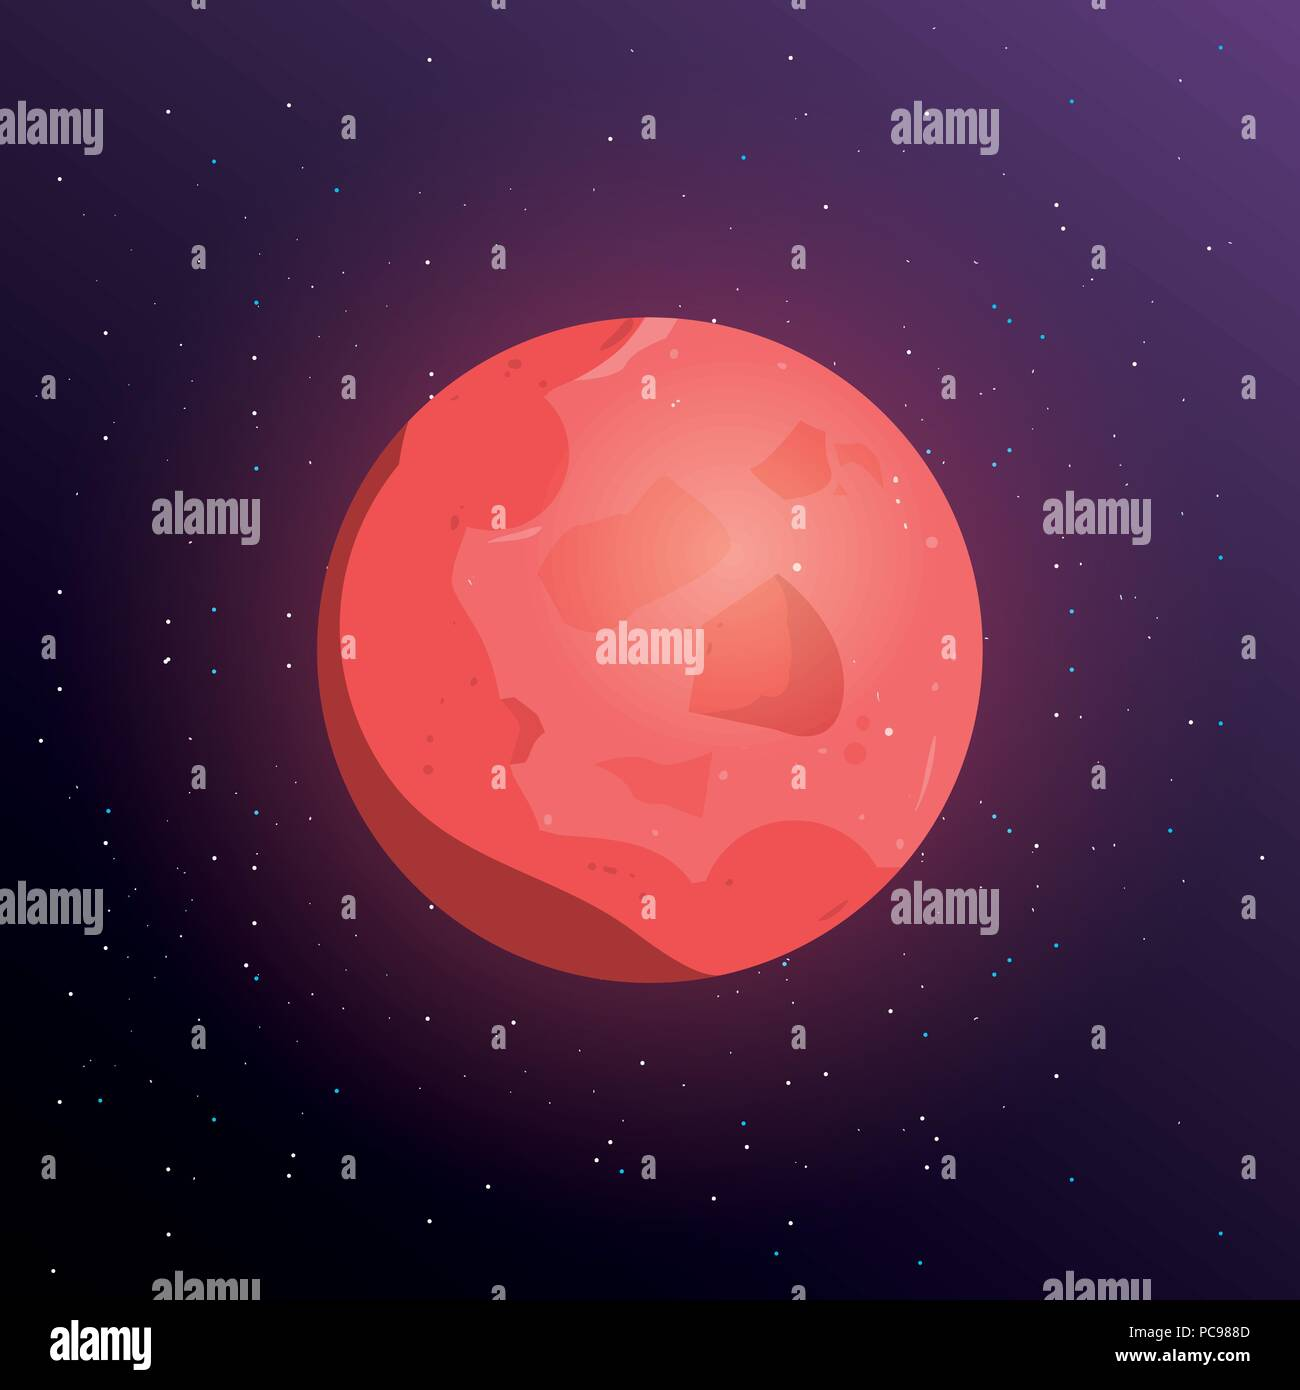 Mars planet icon over space background, colorful design. vector illustration - Stock Vector